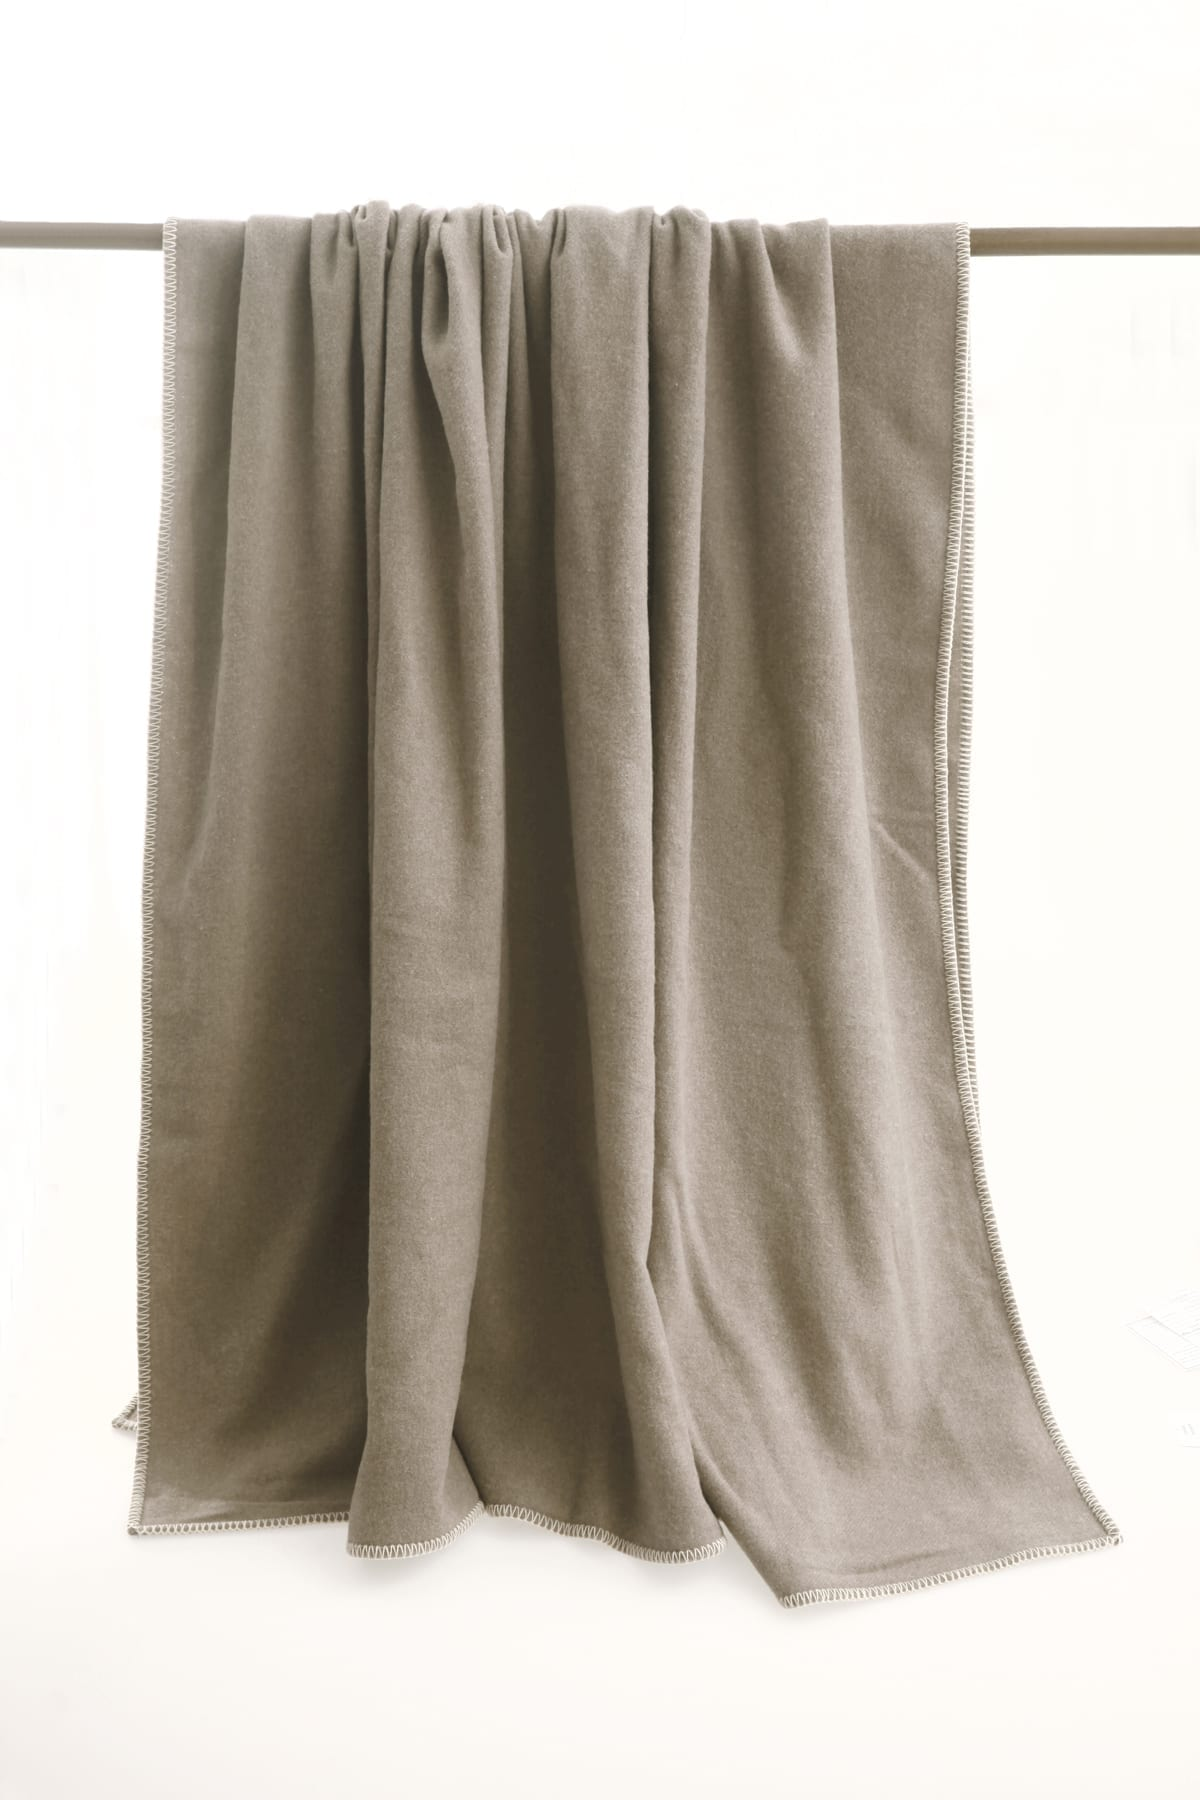 MM Linen Wellshead Blanket in Taupe available at McKenzie & Willis